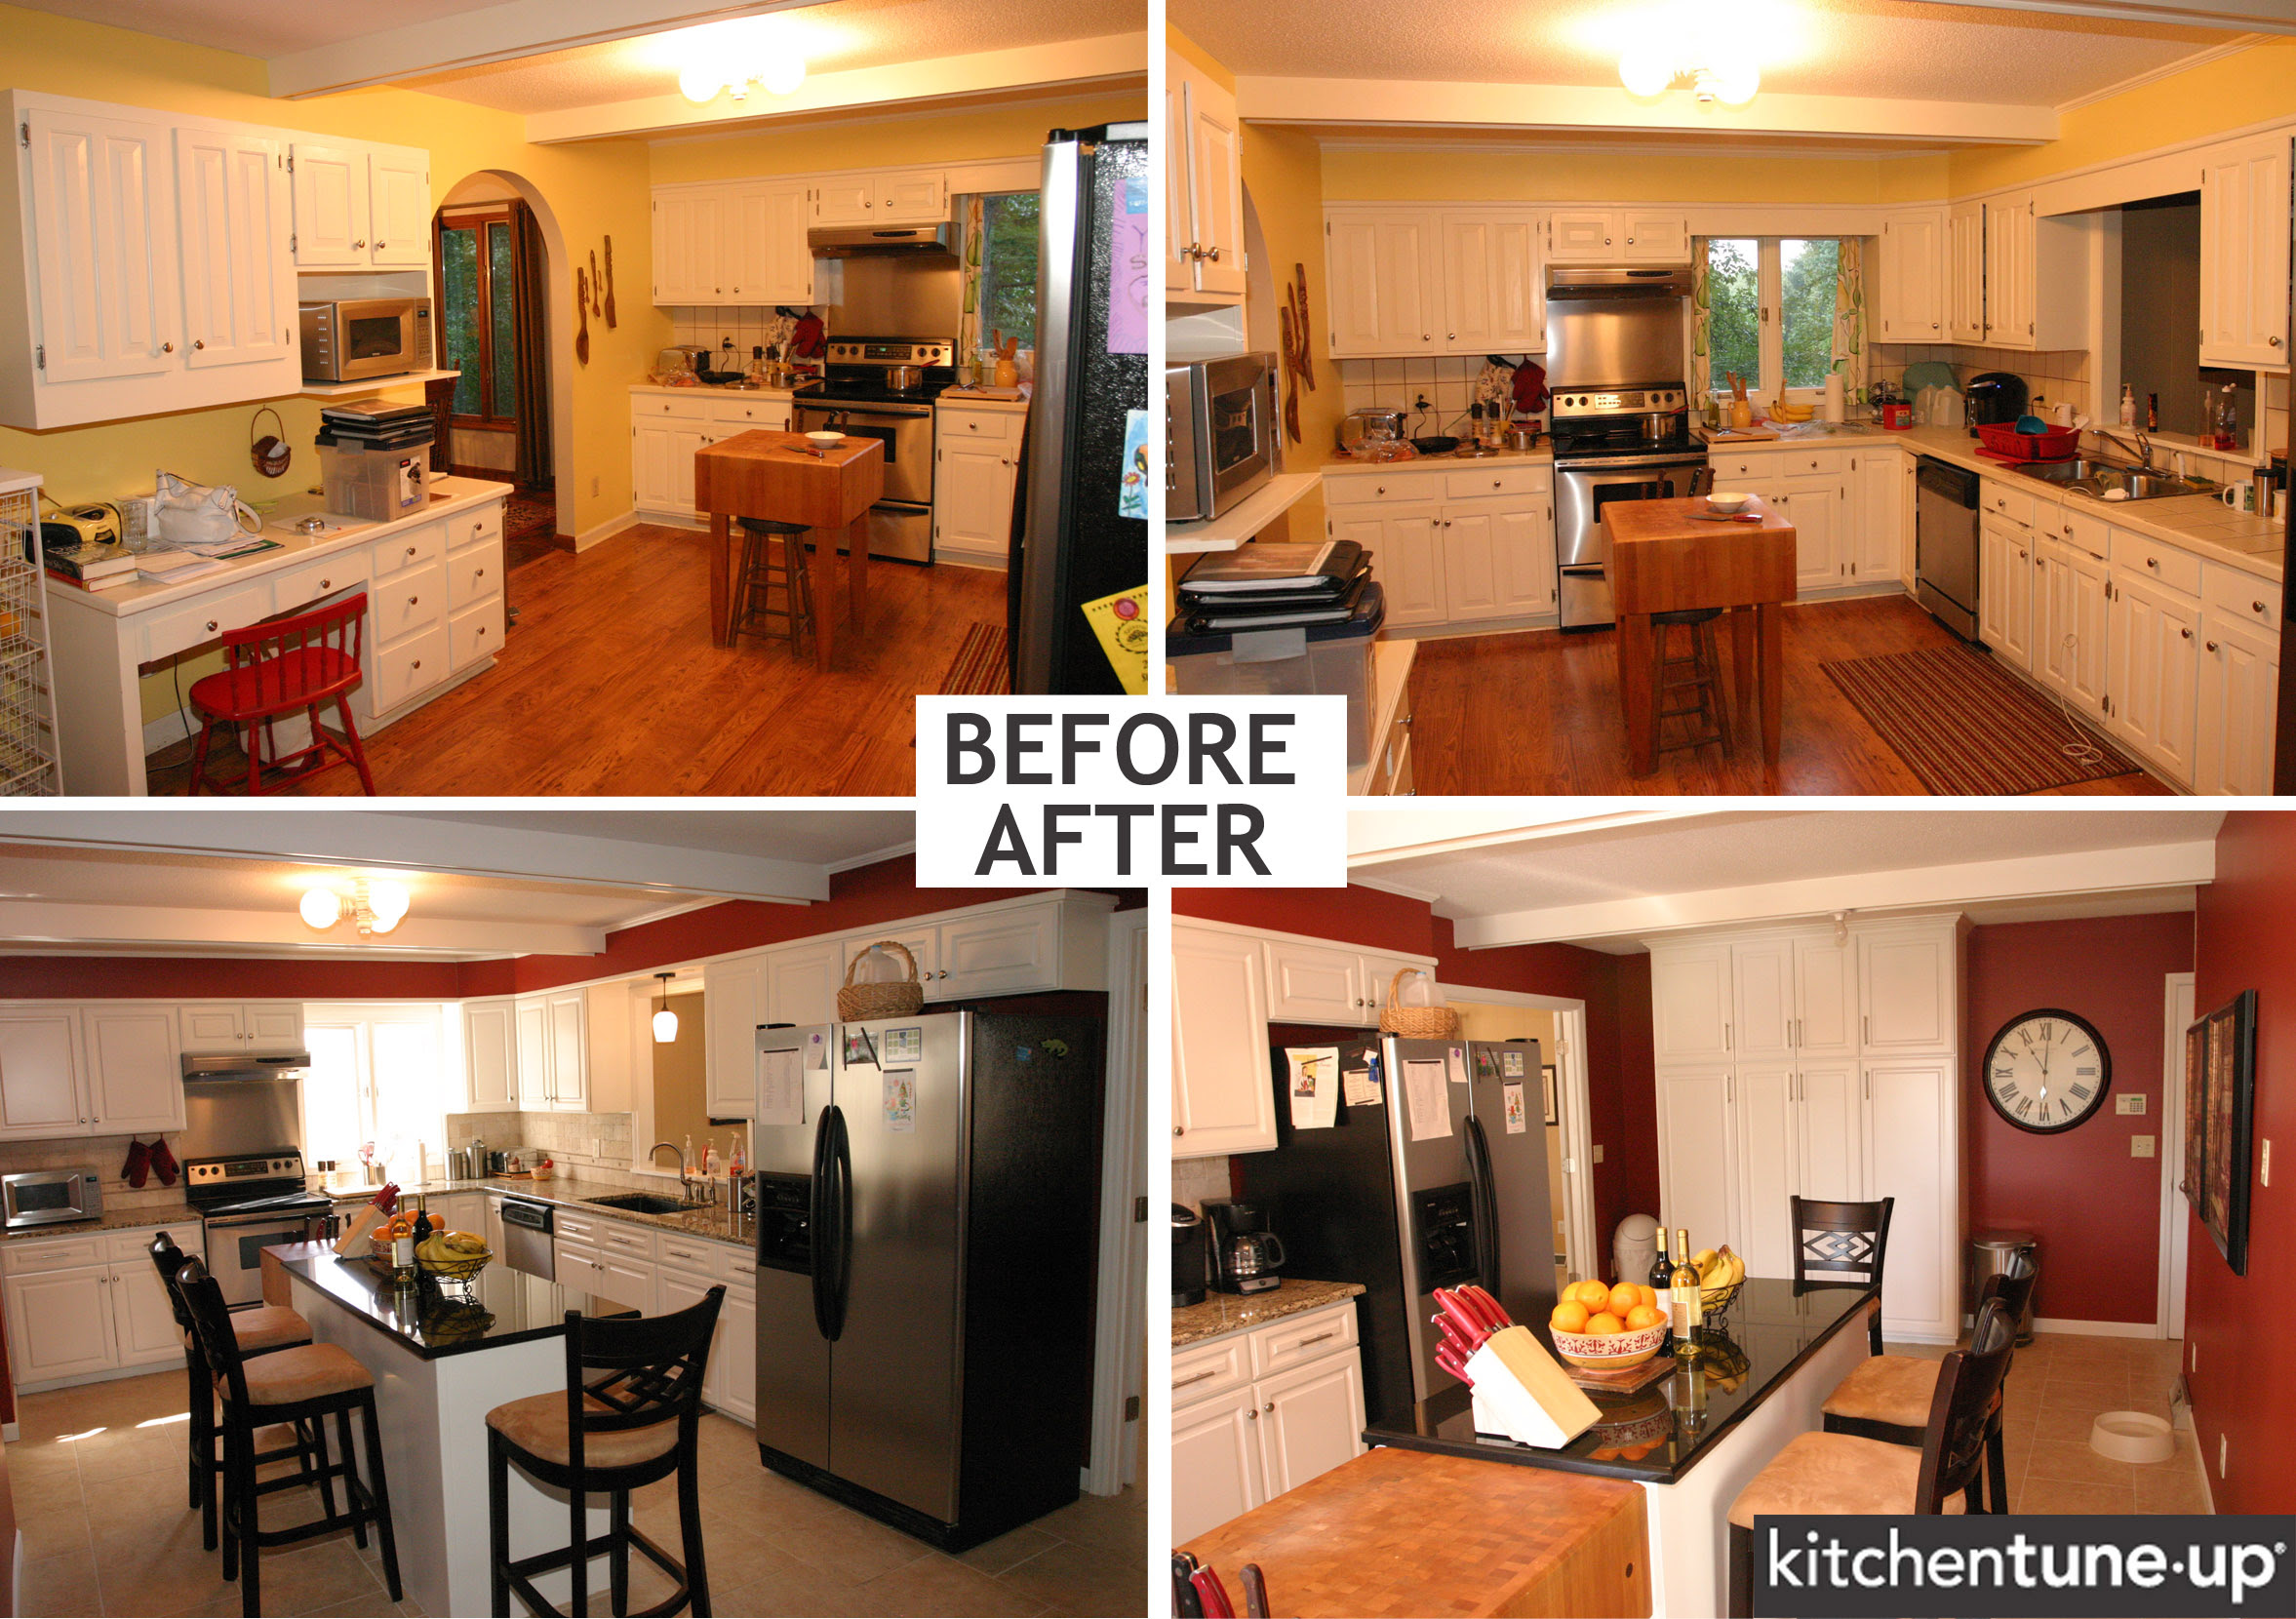 Kitchen Tune-up: Tom's Blog | Charlotte, NC | Page 5